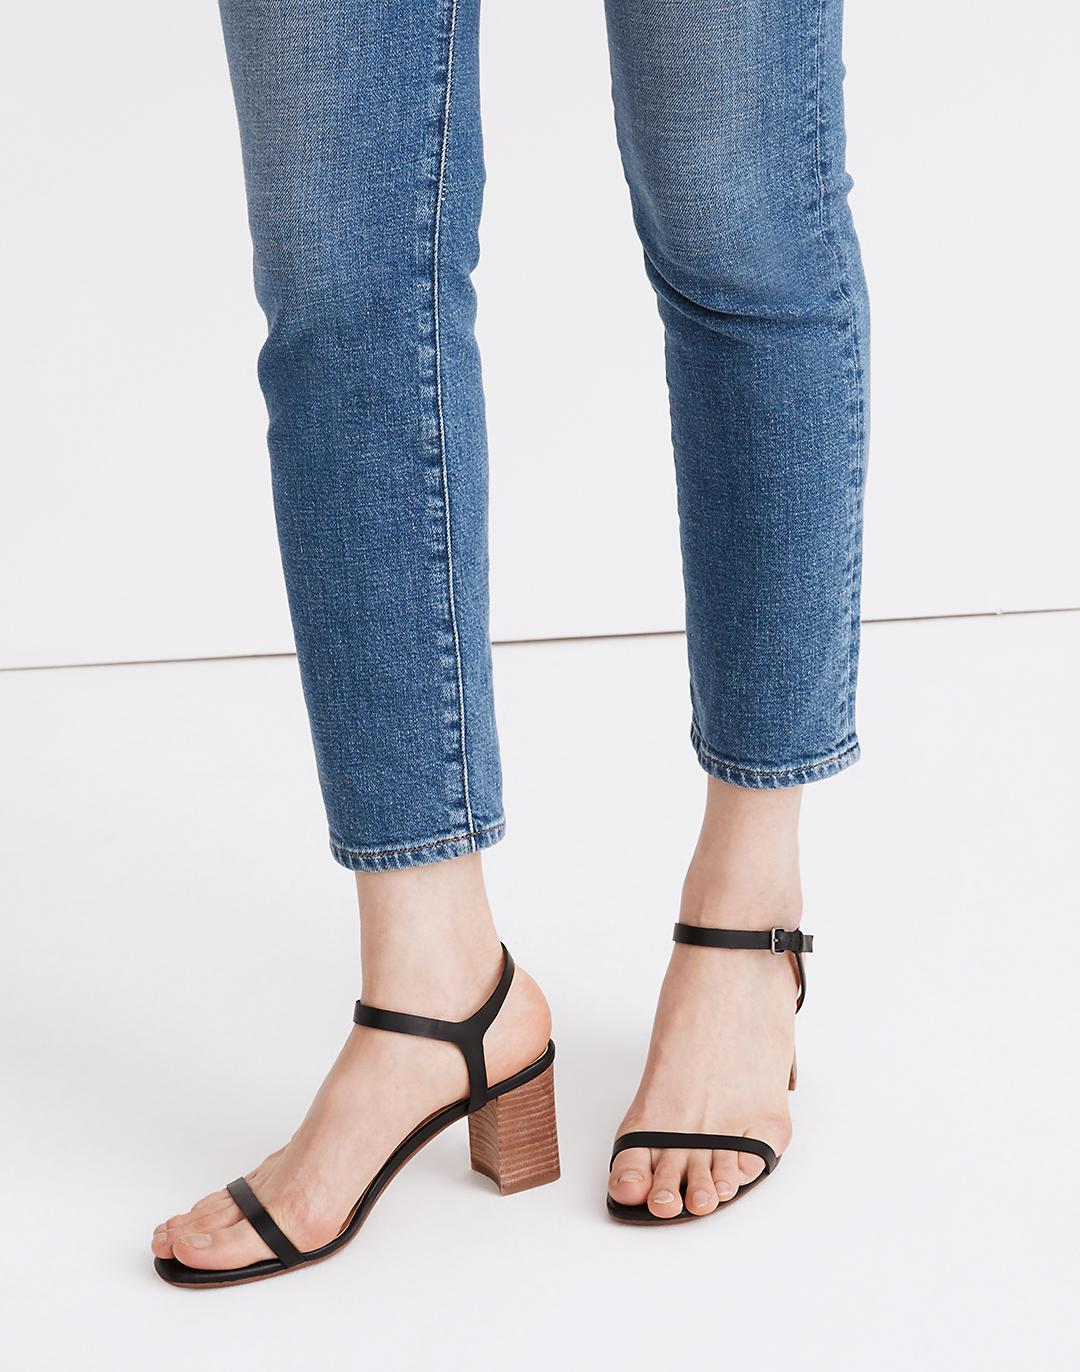 The Holly Ankle-Strap Sandal in Leather 3